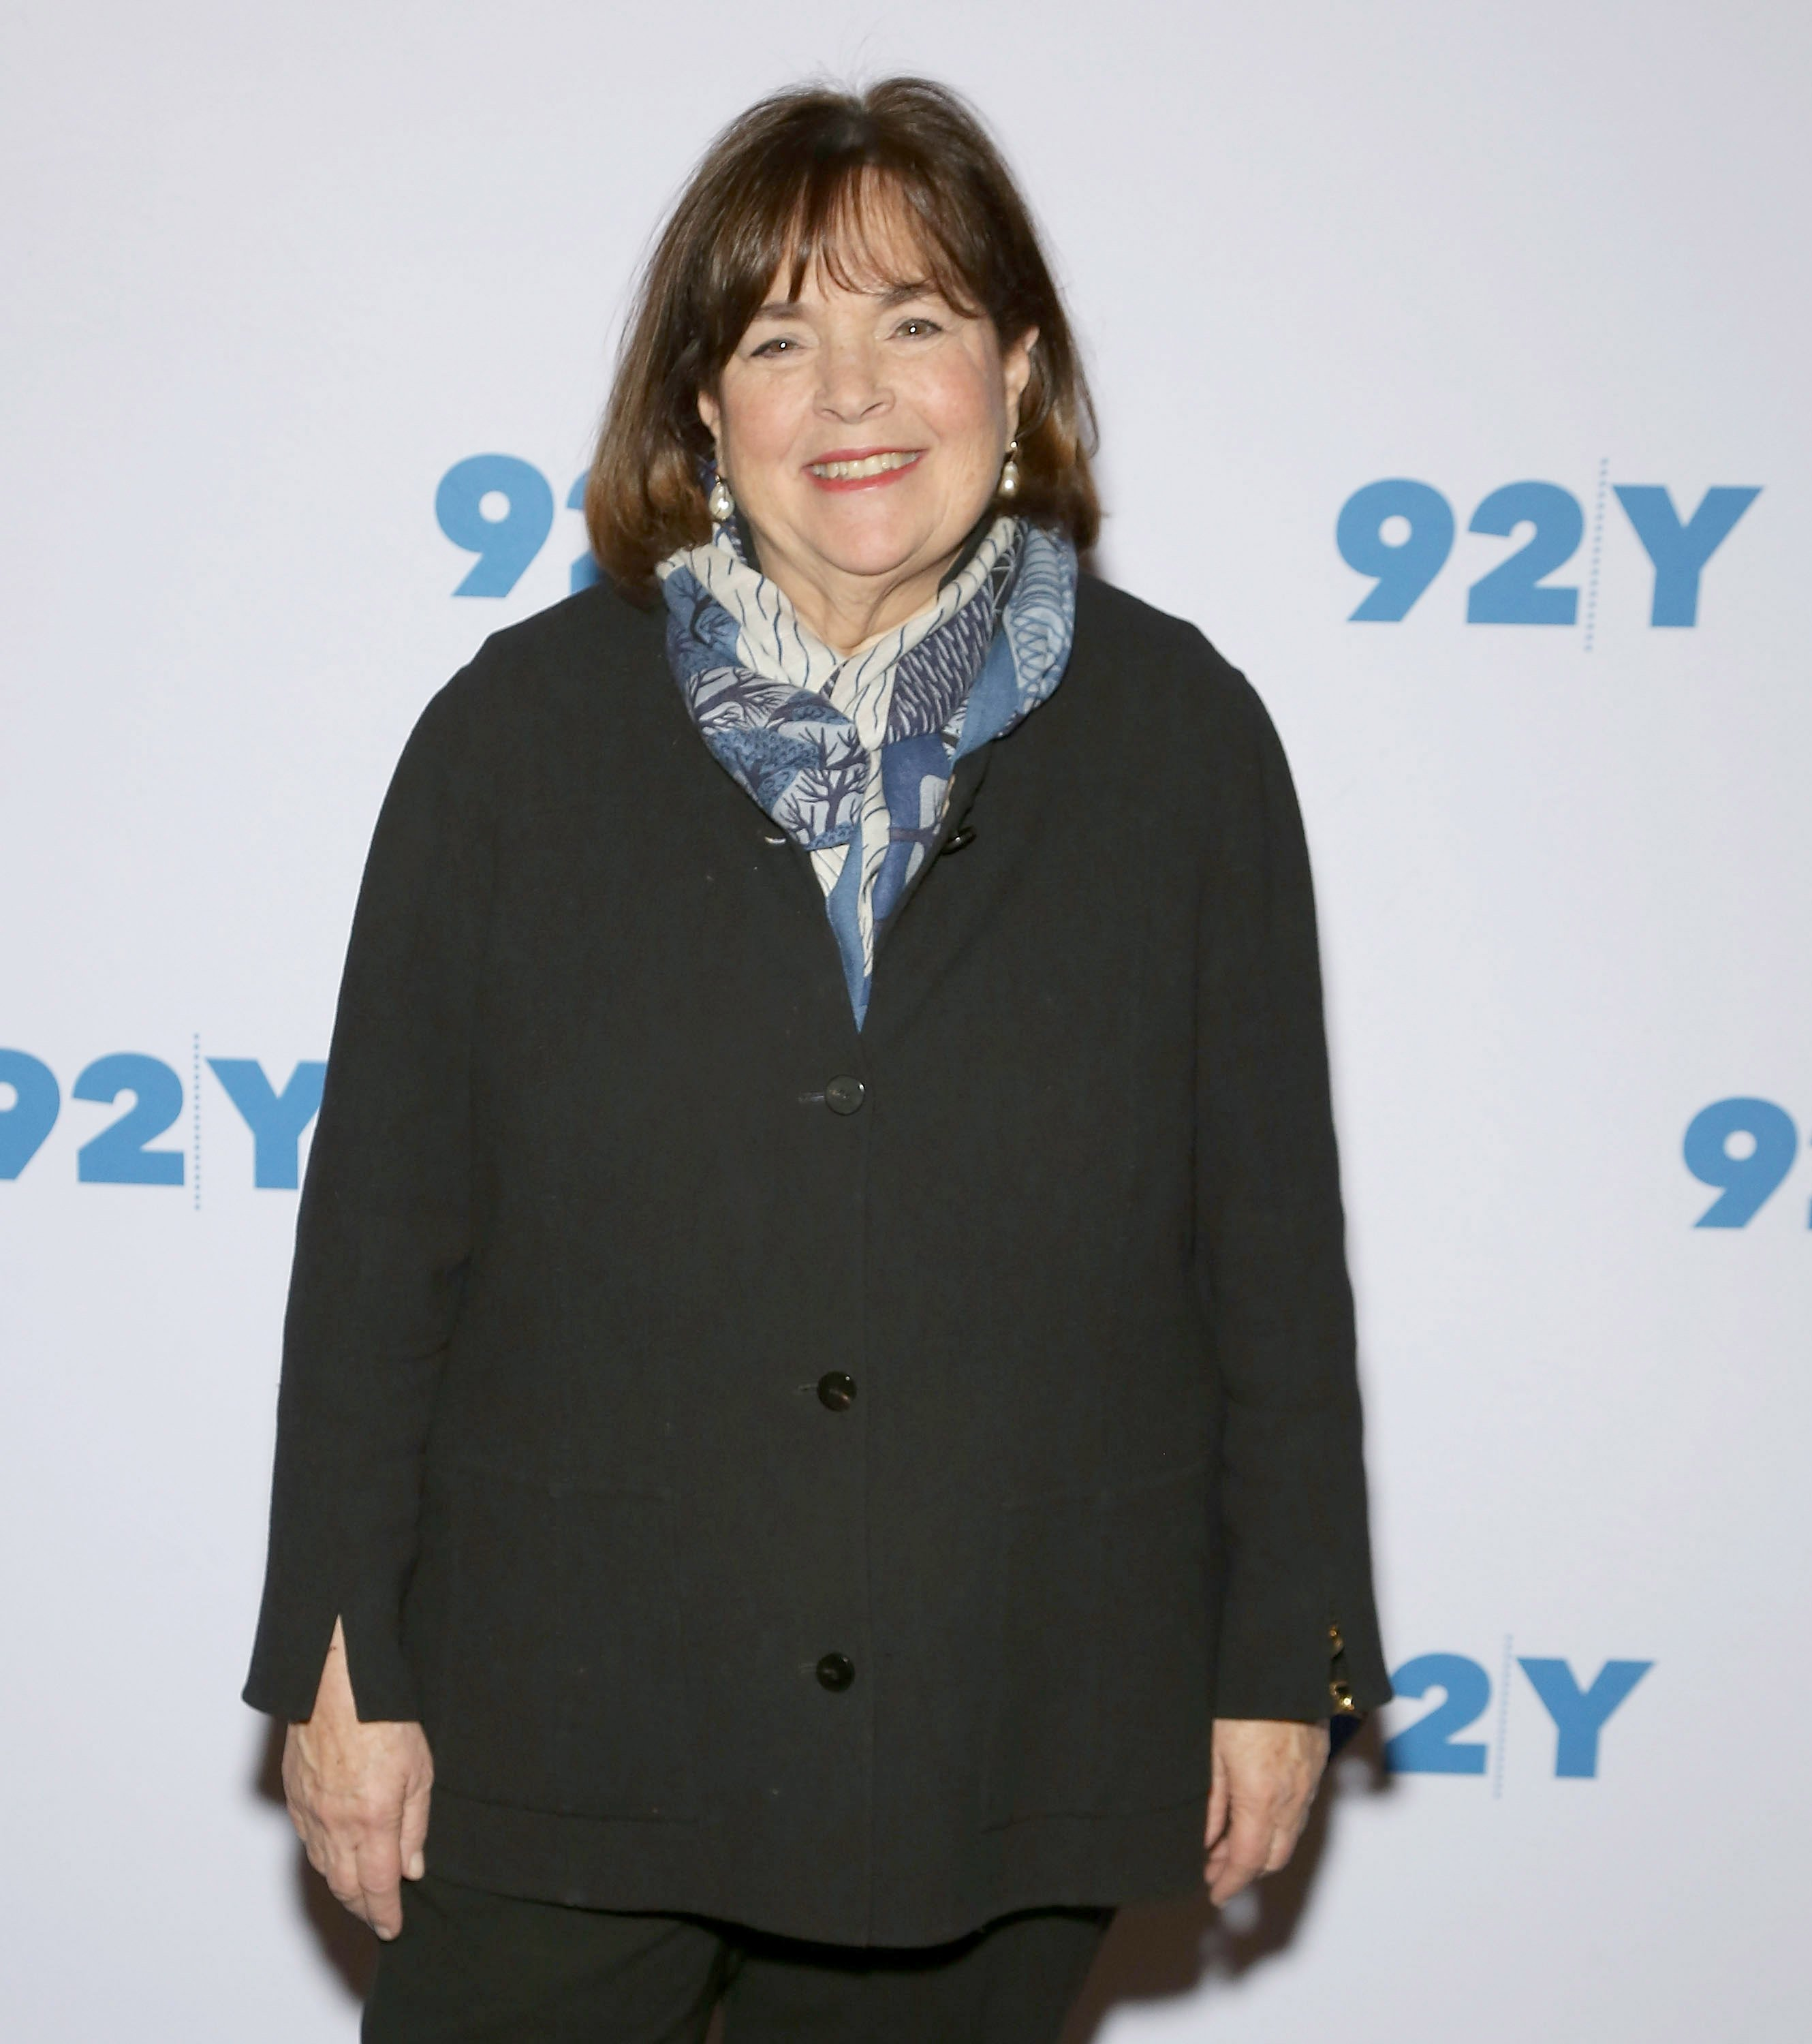 Ina Garten attends Ina Garten in Conversation with Danny Meyer at 92nd Street Y on January 31, 2017 | Photo: GettyImages